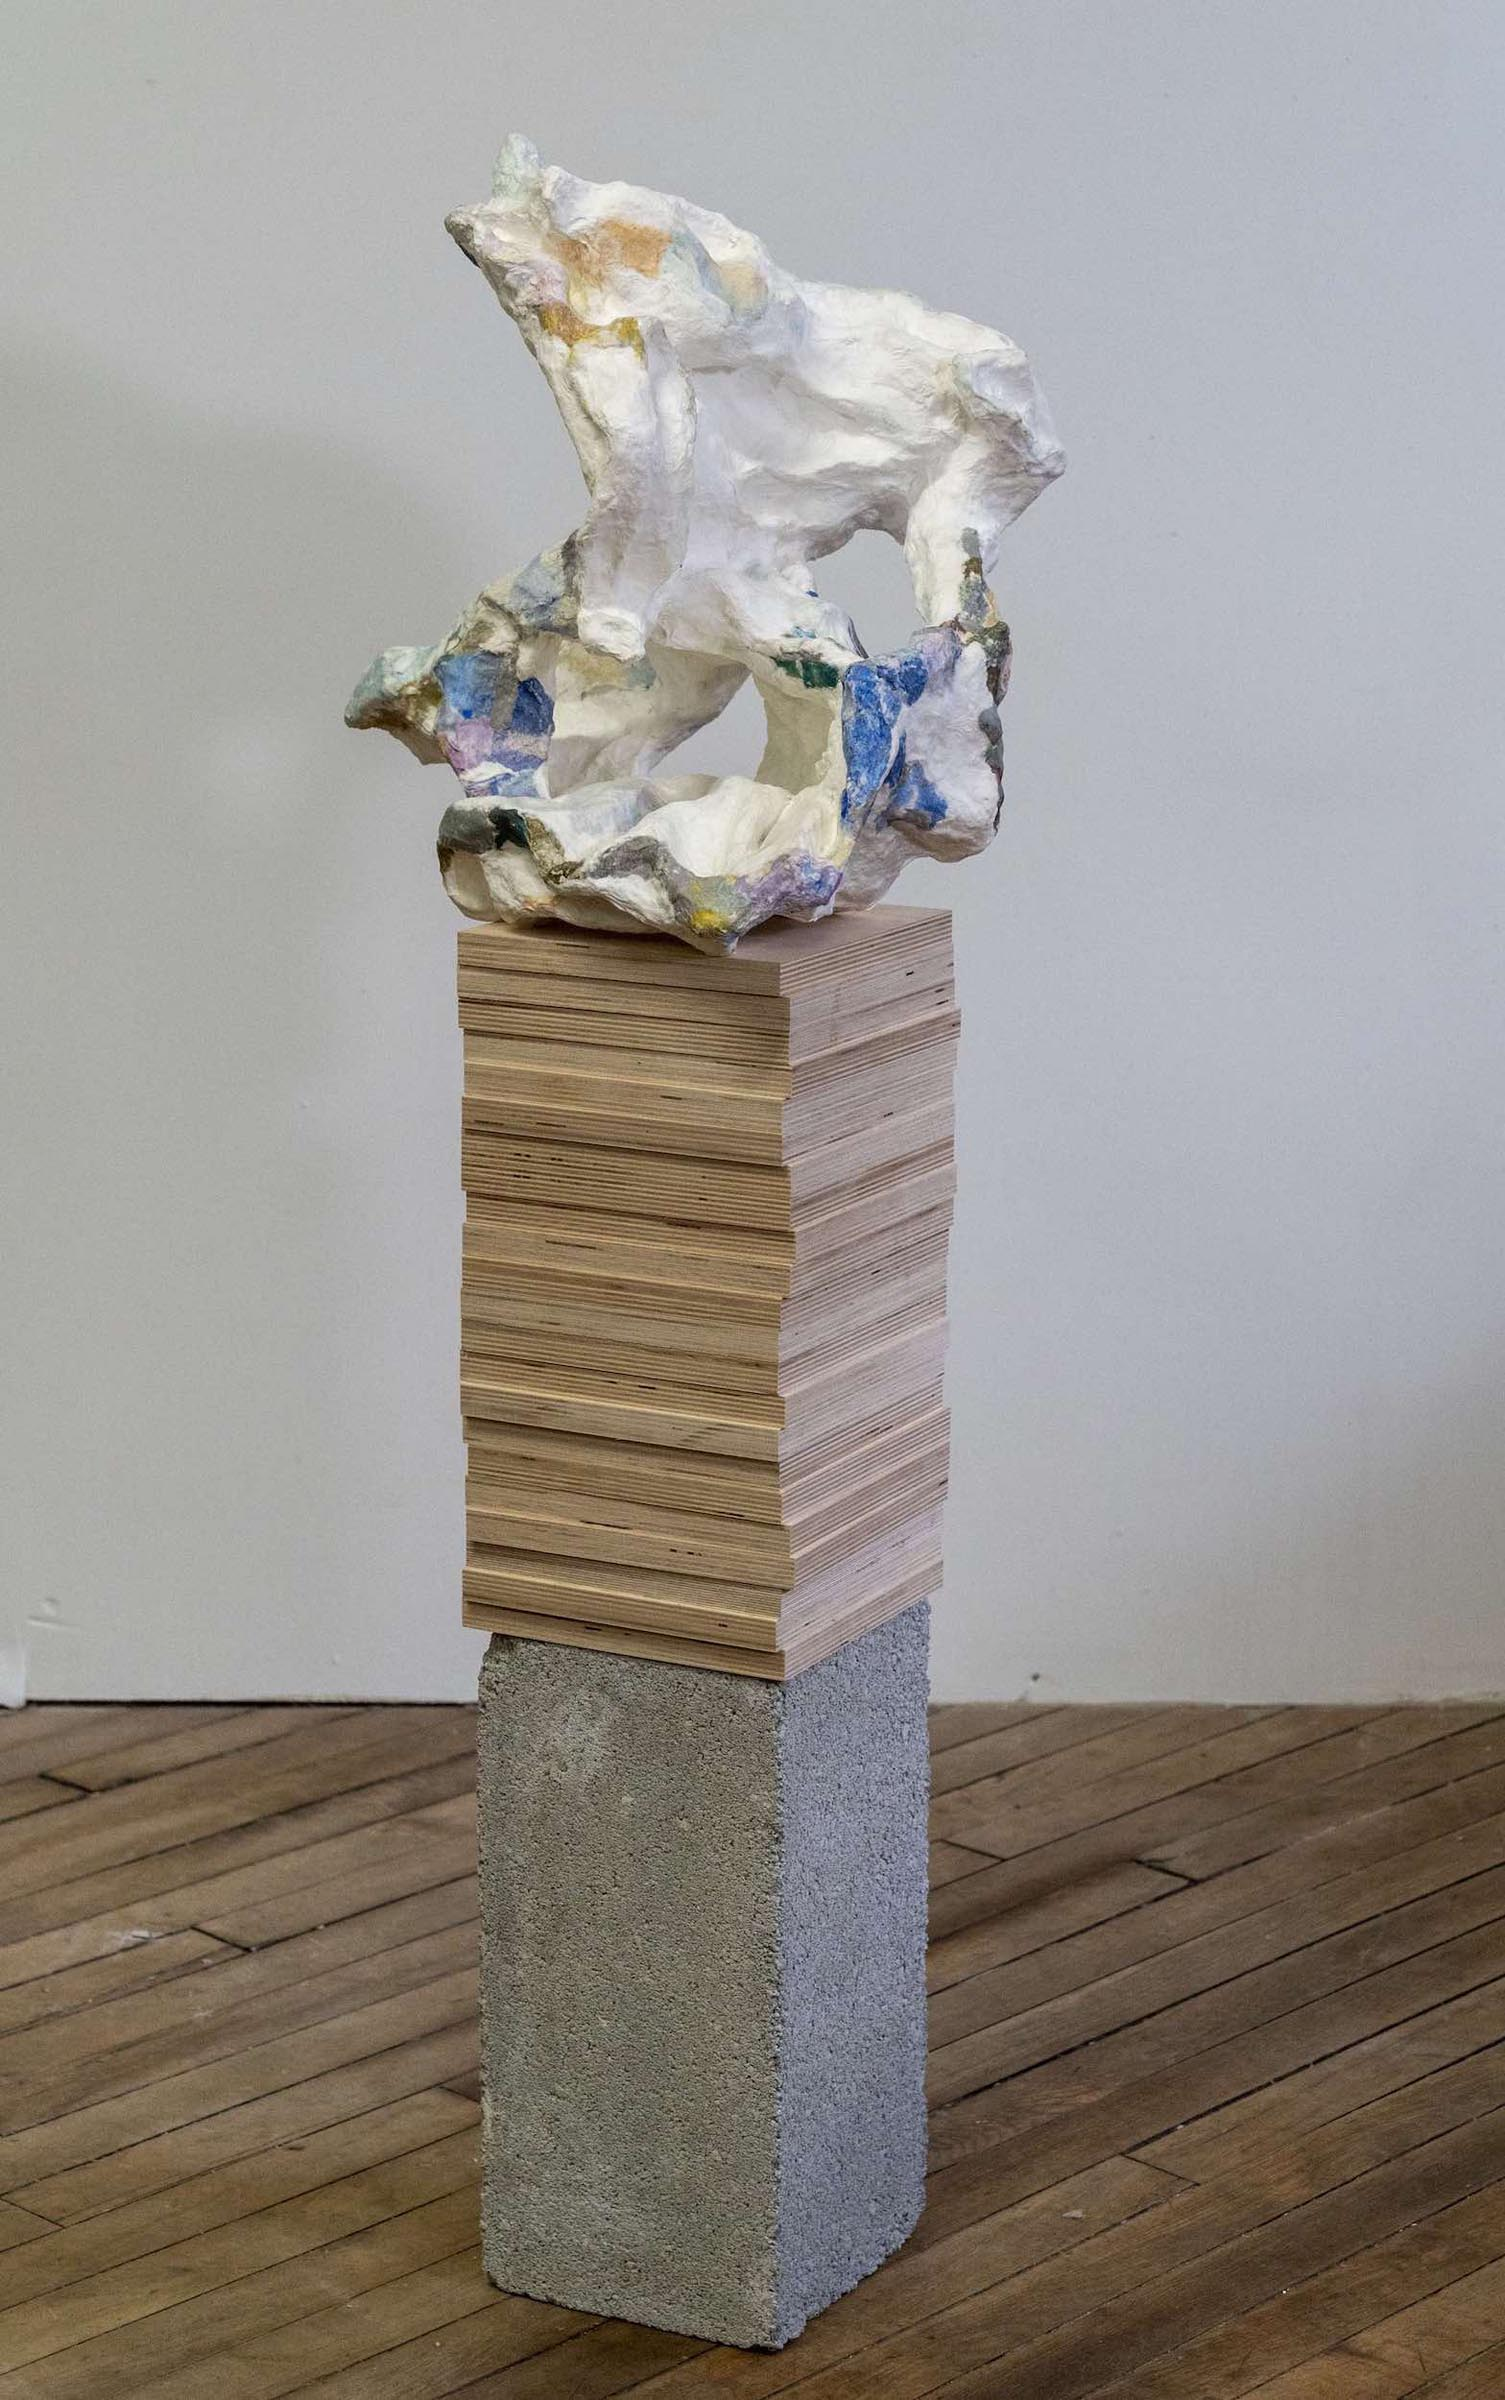 Alexis Granwell, Deluge Handmade paper, paper mache, wood, cement 49